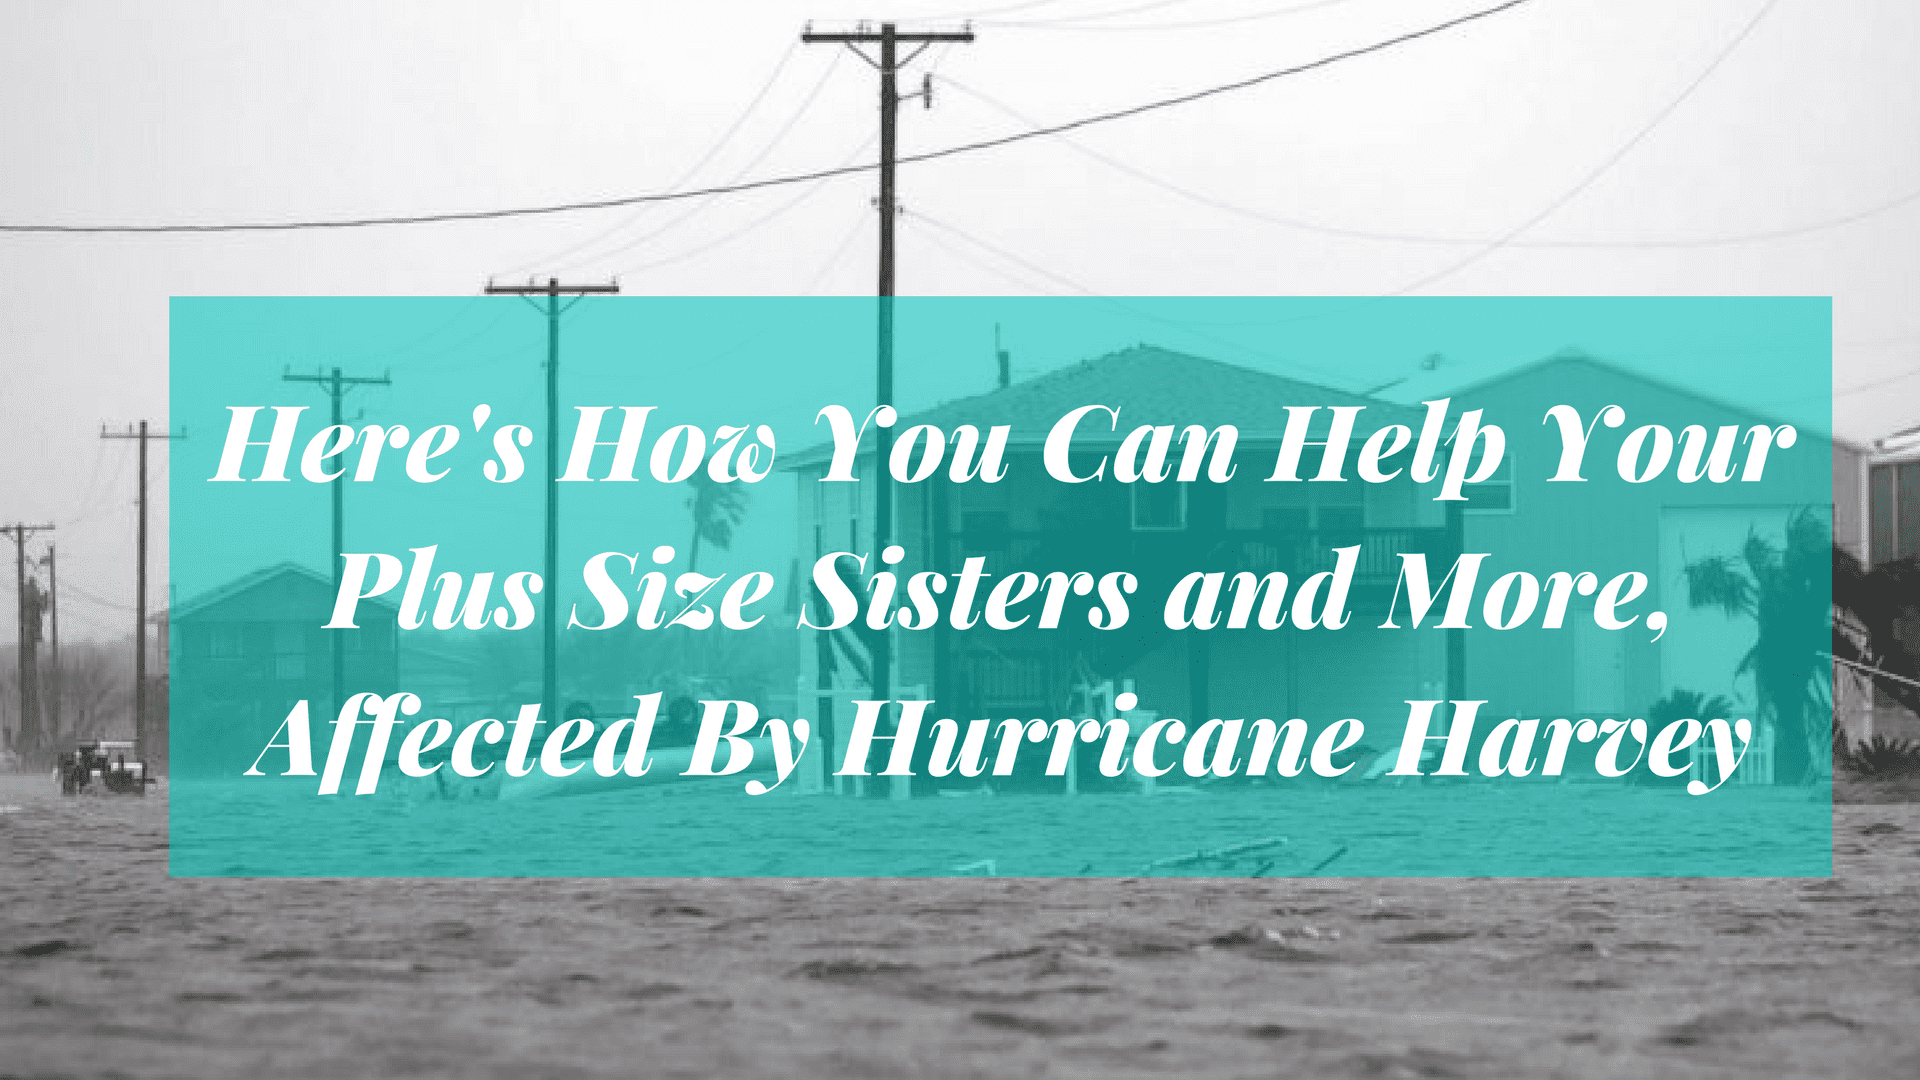 hurricane Harvey, Texas, Houston, help survivors